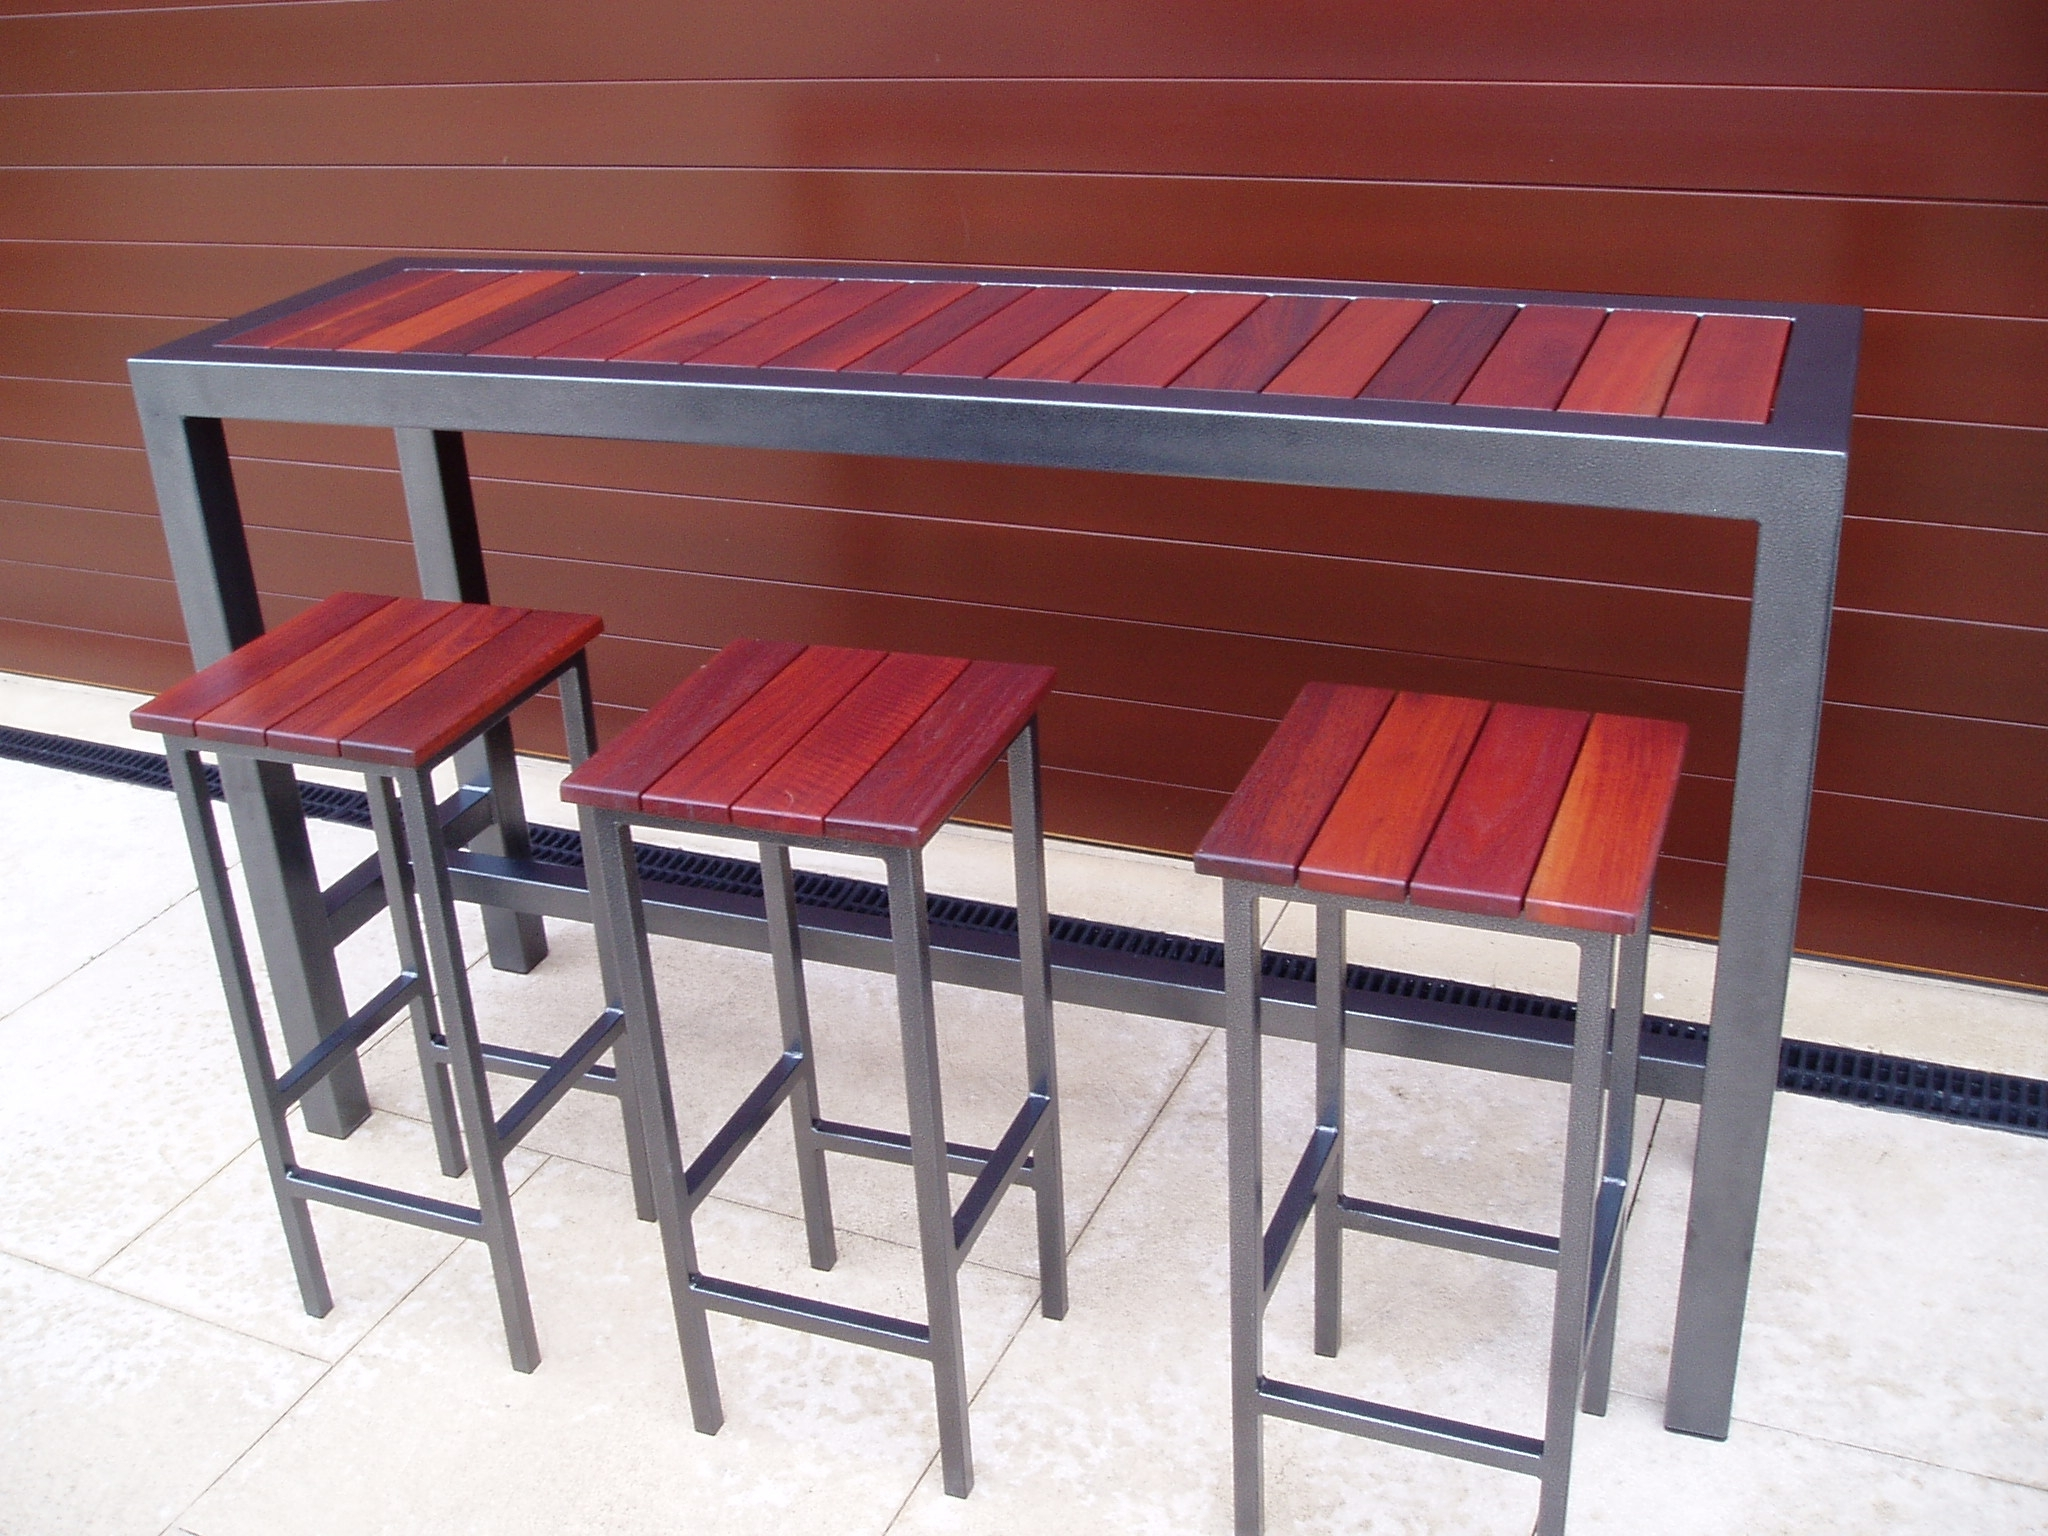 Outdoor Bar Stools And Tables Throughout Bar Stool Outdoor Furniture Enjoy The Summer With Bar Stool Outdoor Furniture